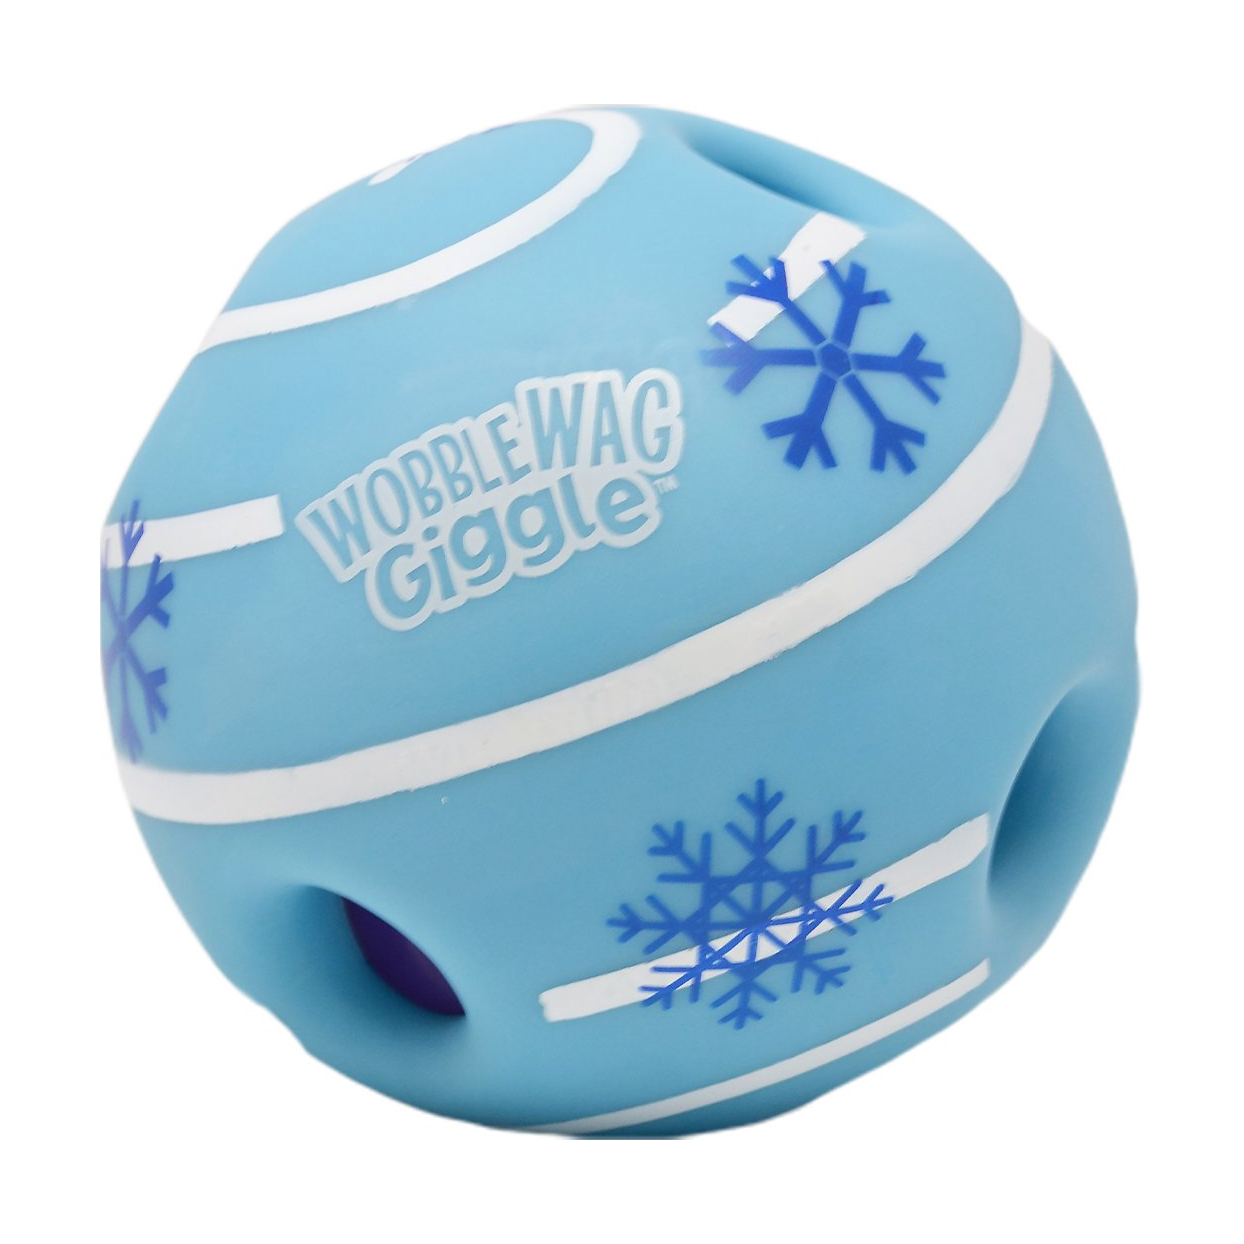 wobble-wag-giggle-holiday-edition-dog-toy